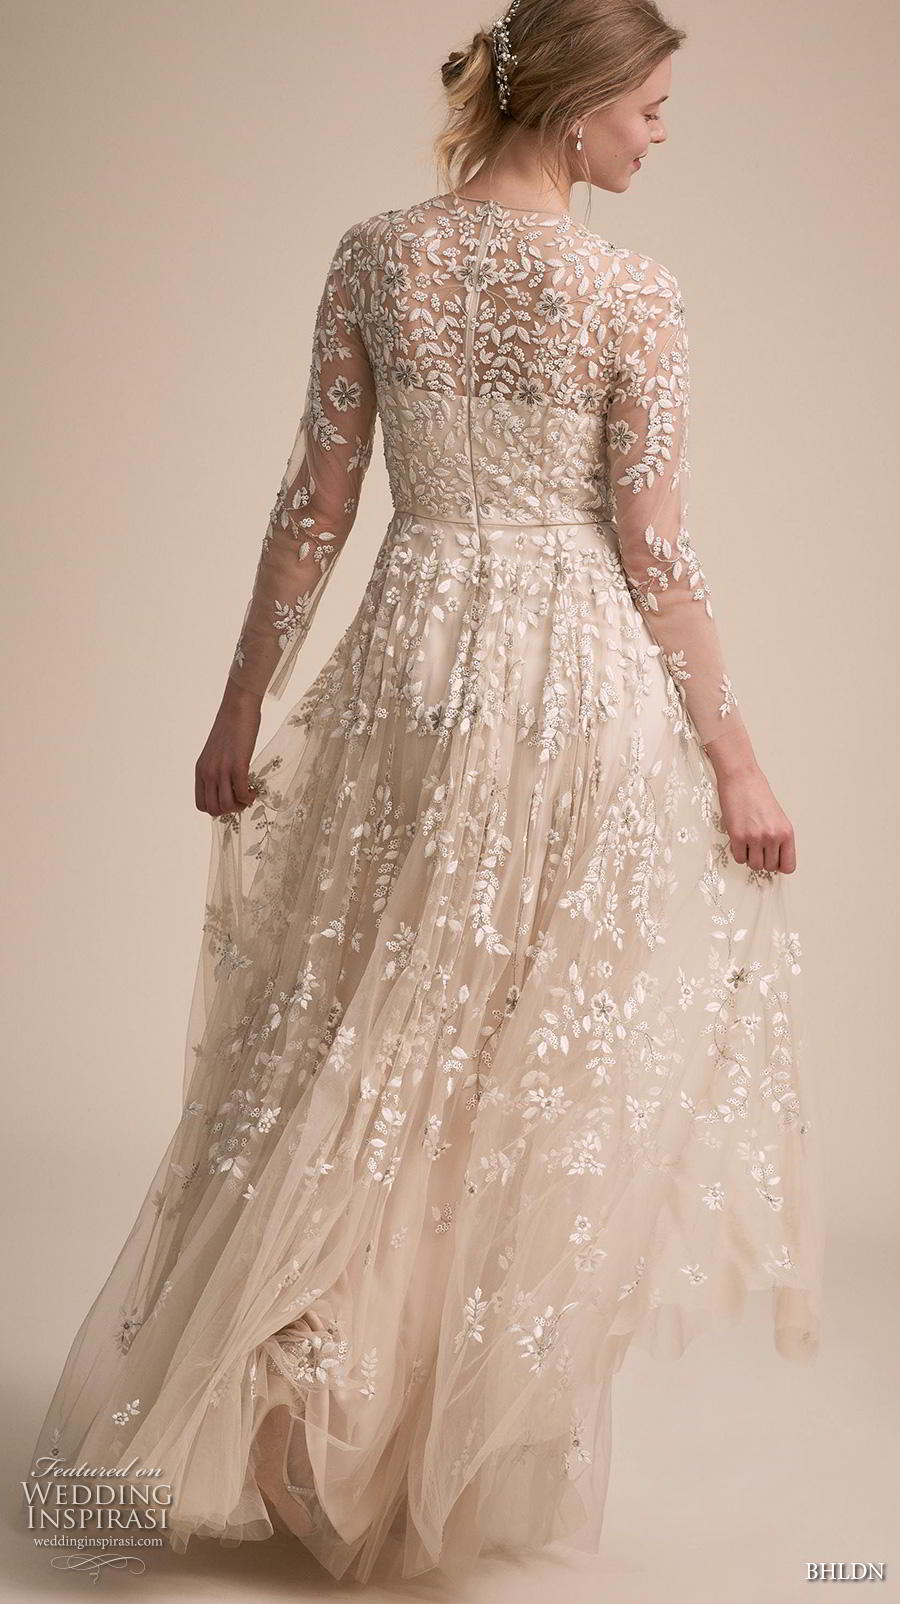 bhldn 2018 own bridal three quarter sleeves illusion jewel neck full embellishment romantic a  line wedding dress full lace back sweep train (1) bv